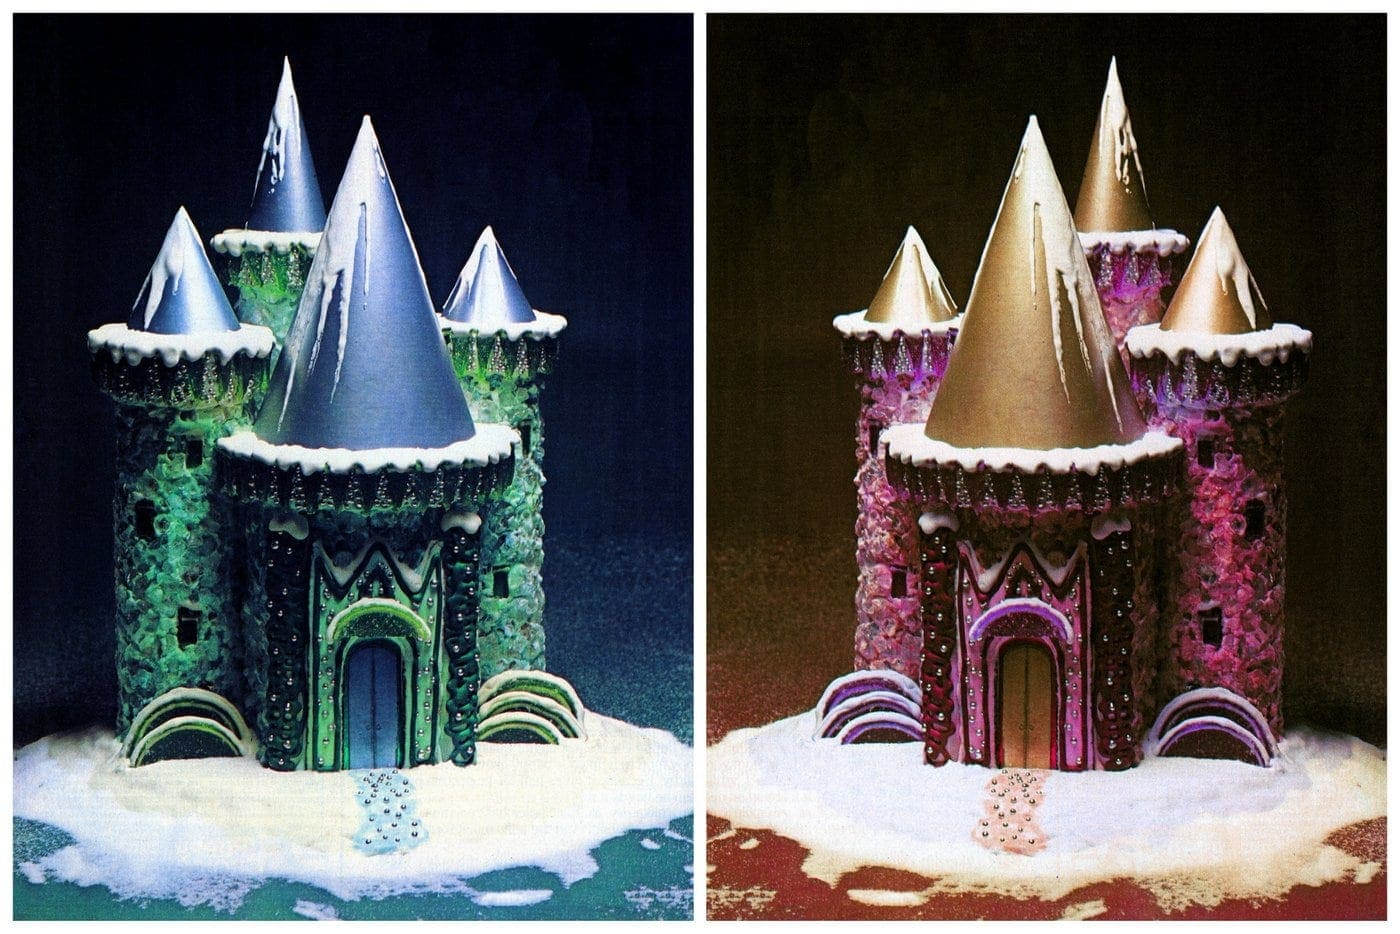 Vintage Ice Castle cake decorating